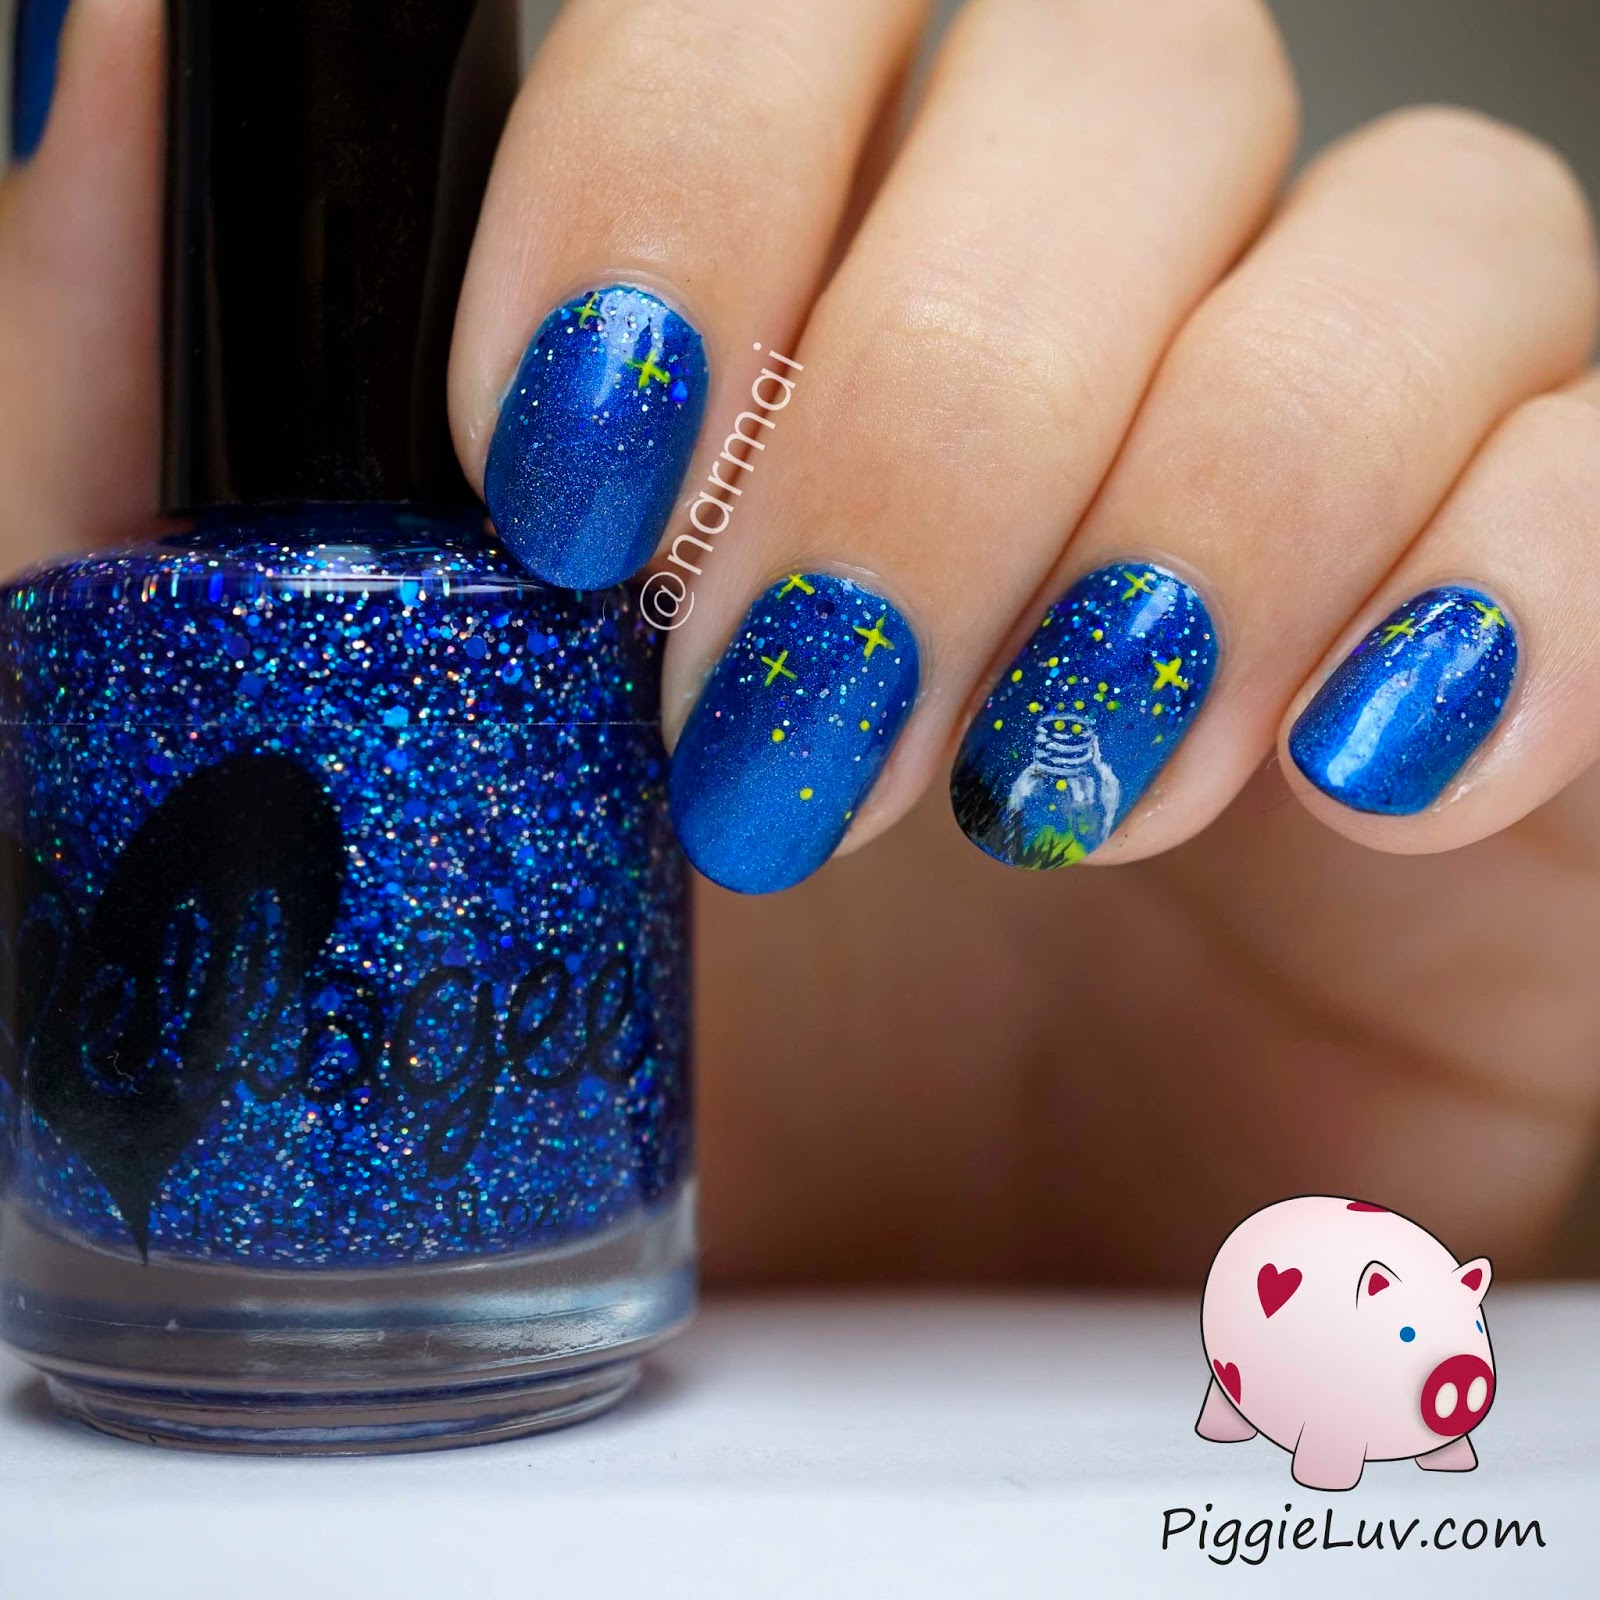 Firefly Jar Art Piggieluv Fireflies Become Stars Nail Art